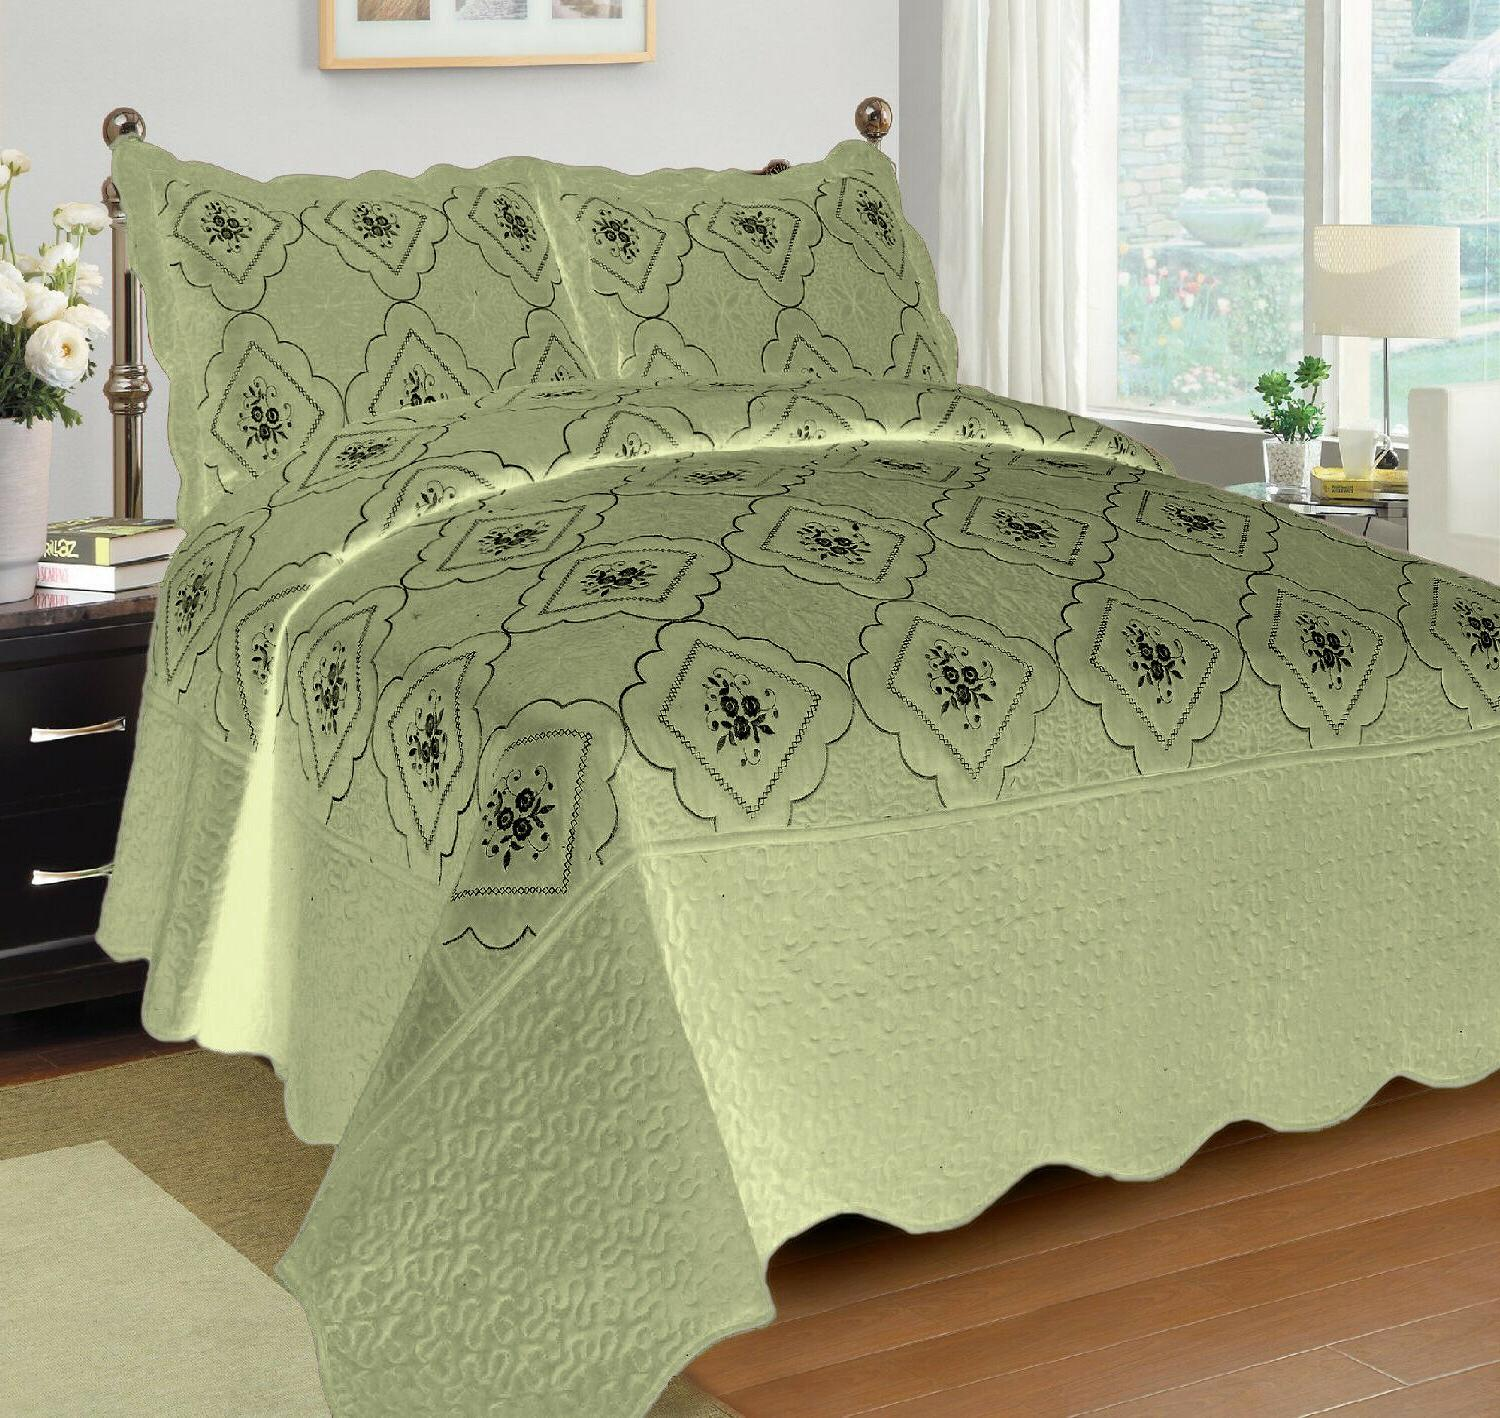 3 Polyester Bedspread Quilted Embroidery Coverlet